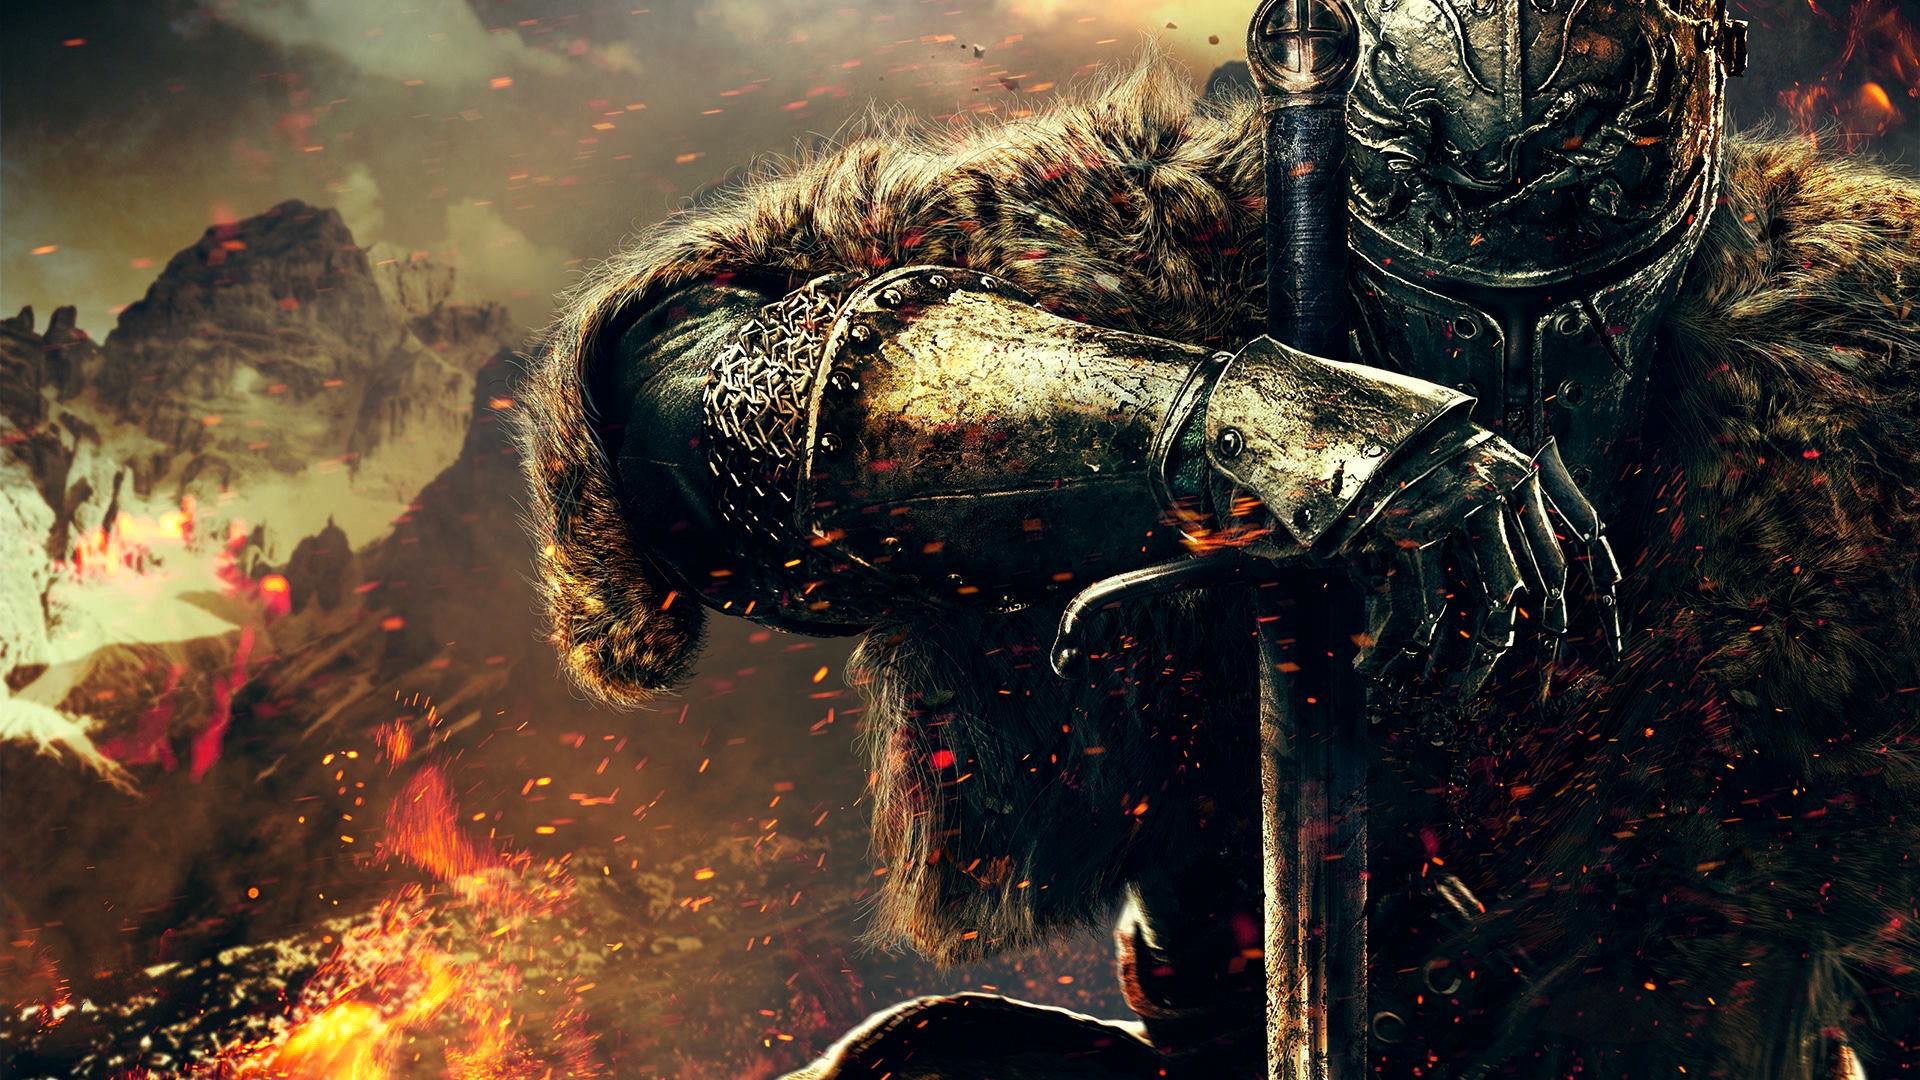 1920x1080 Medieval Wallpaper (69 images) Medieval Black Knight Images – Epic  Wallpaperz ...